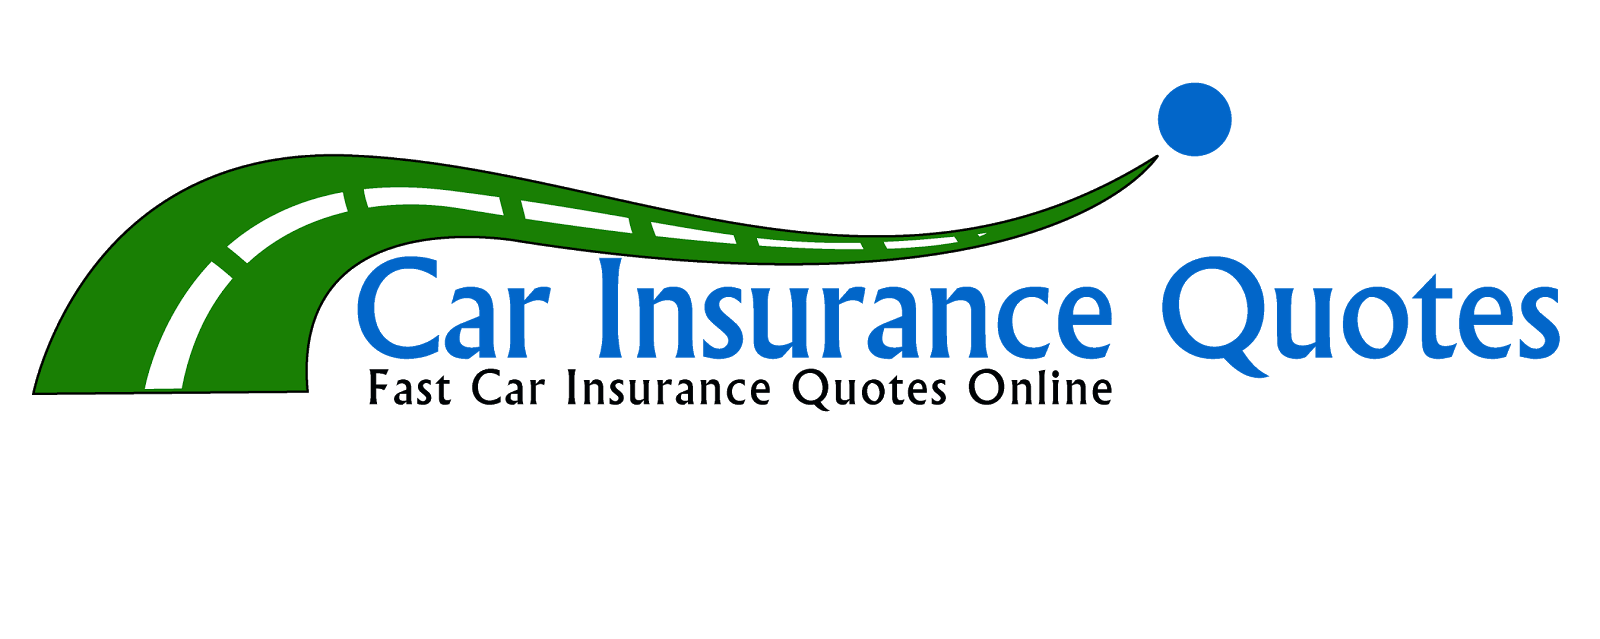 Online Insurance Quotes Entrancing Free Car Insurance Quotes Online  Places To Visit  Pinterest . 2017